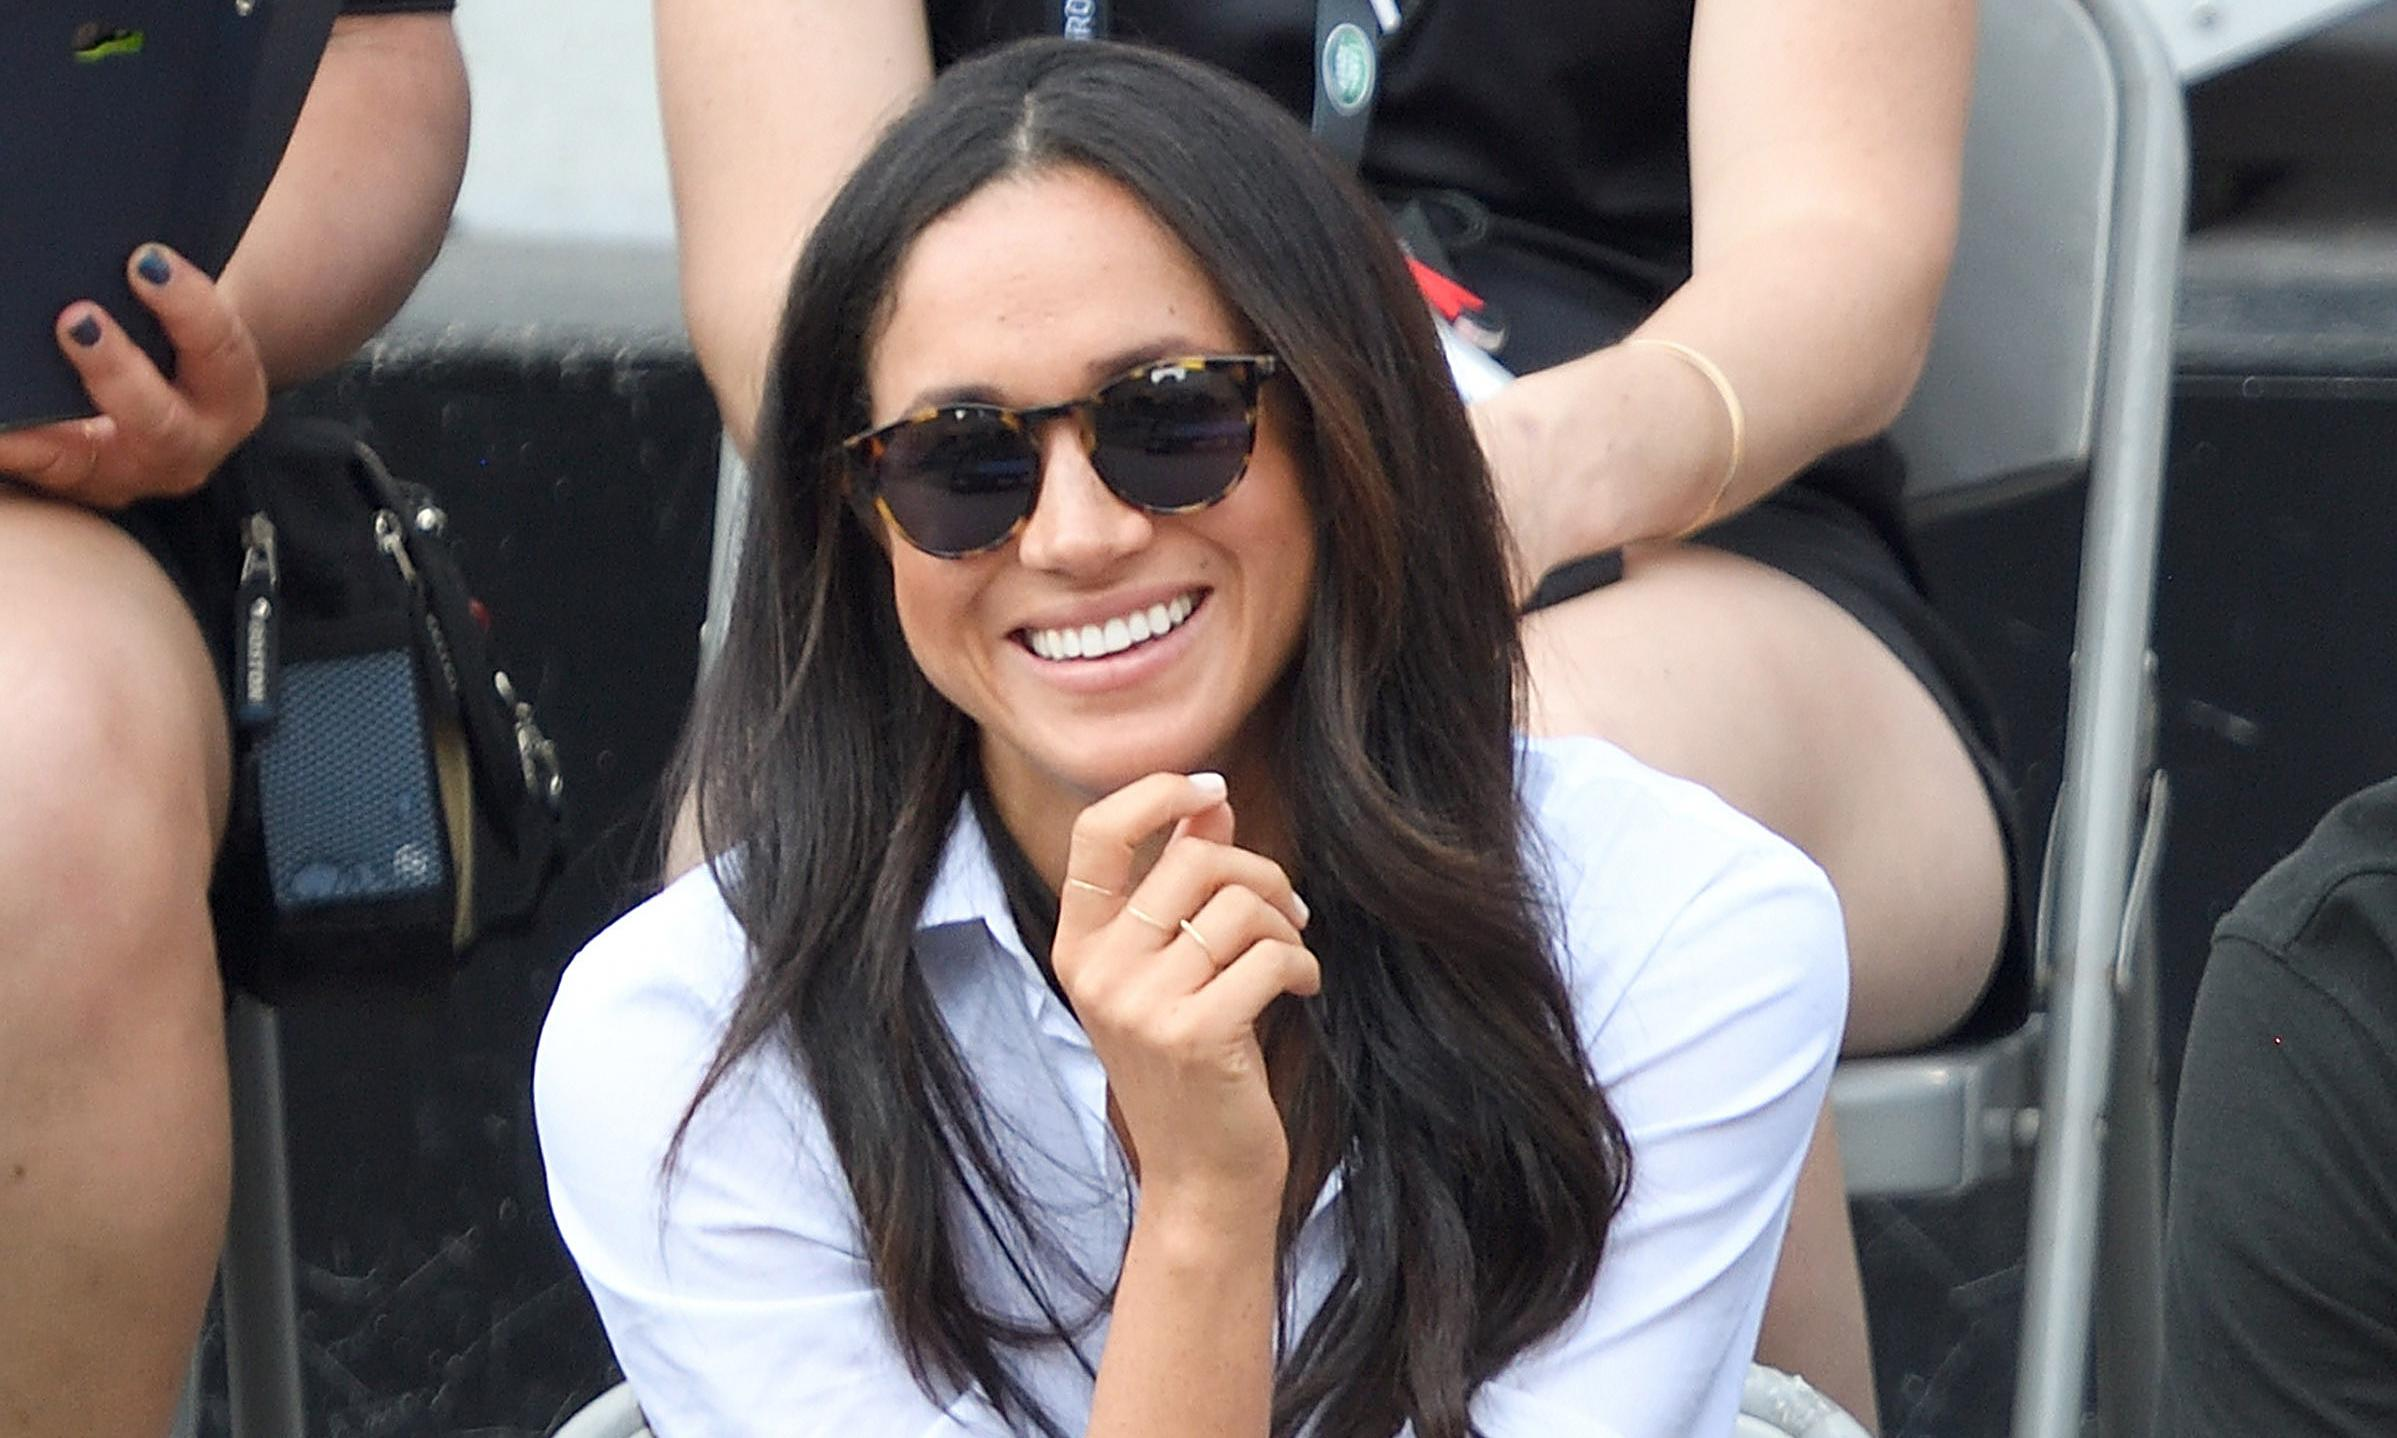 'To Meghan Markle' is now a verb – here's how to use it